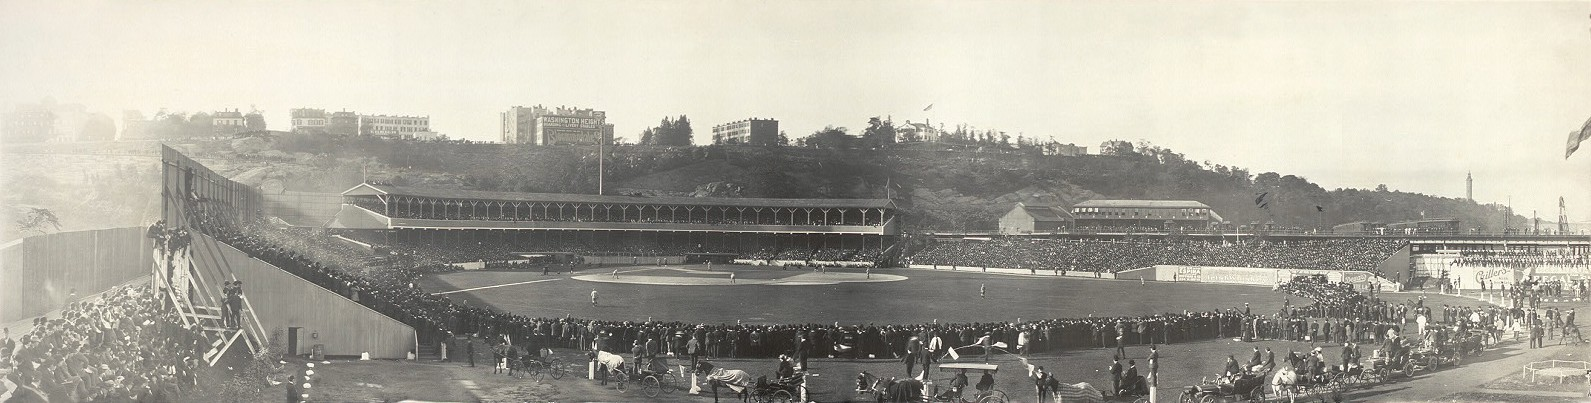 Polo_grounds_panorama.jpg